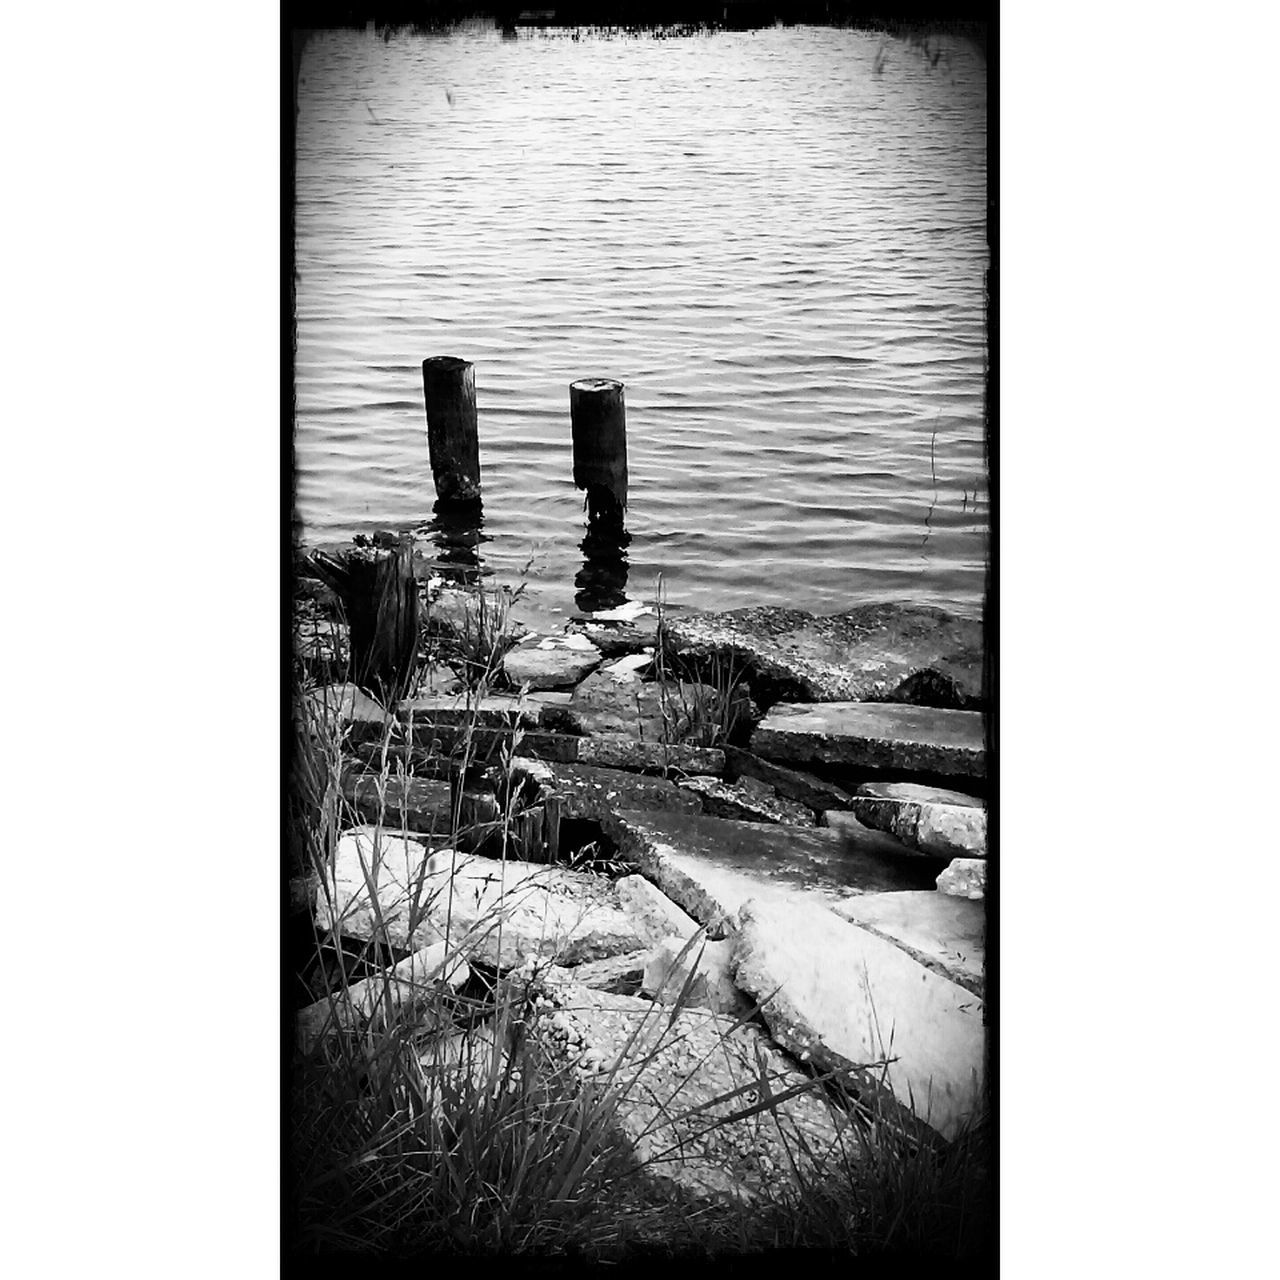 water, lake, day, nature, no people, outdoors, animal themes